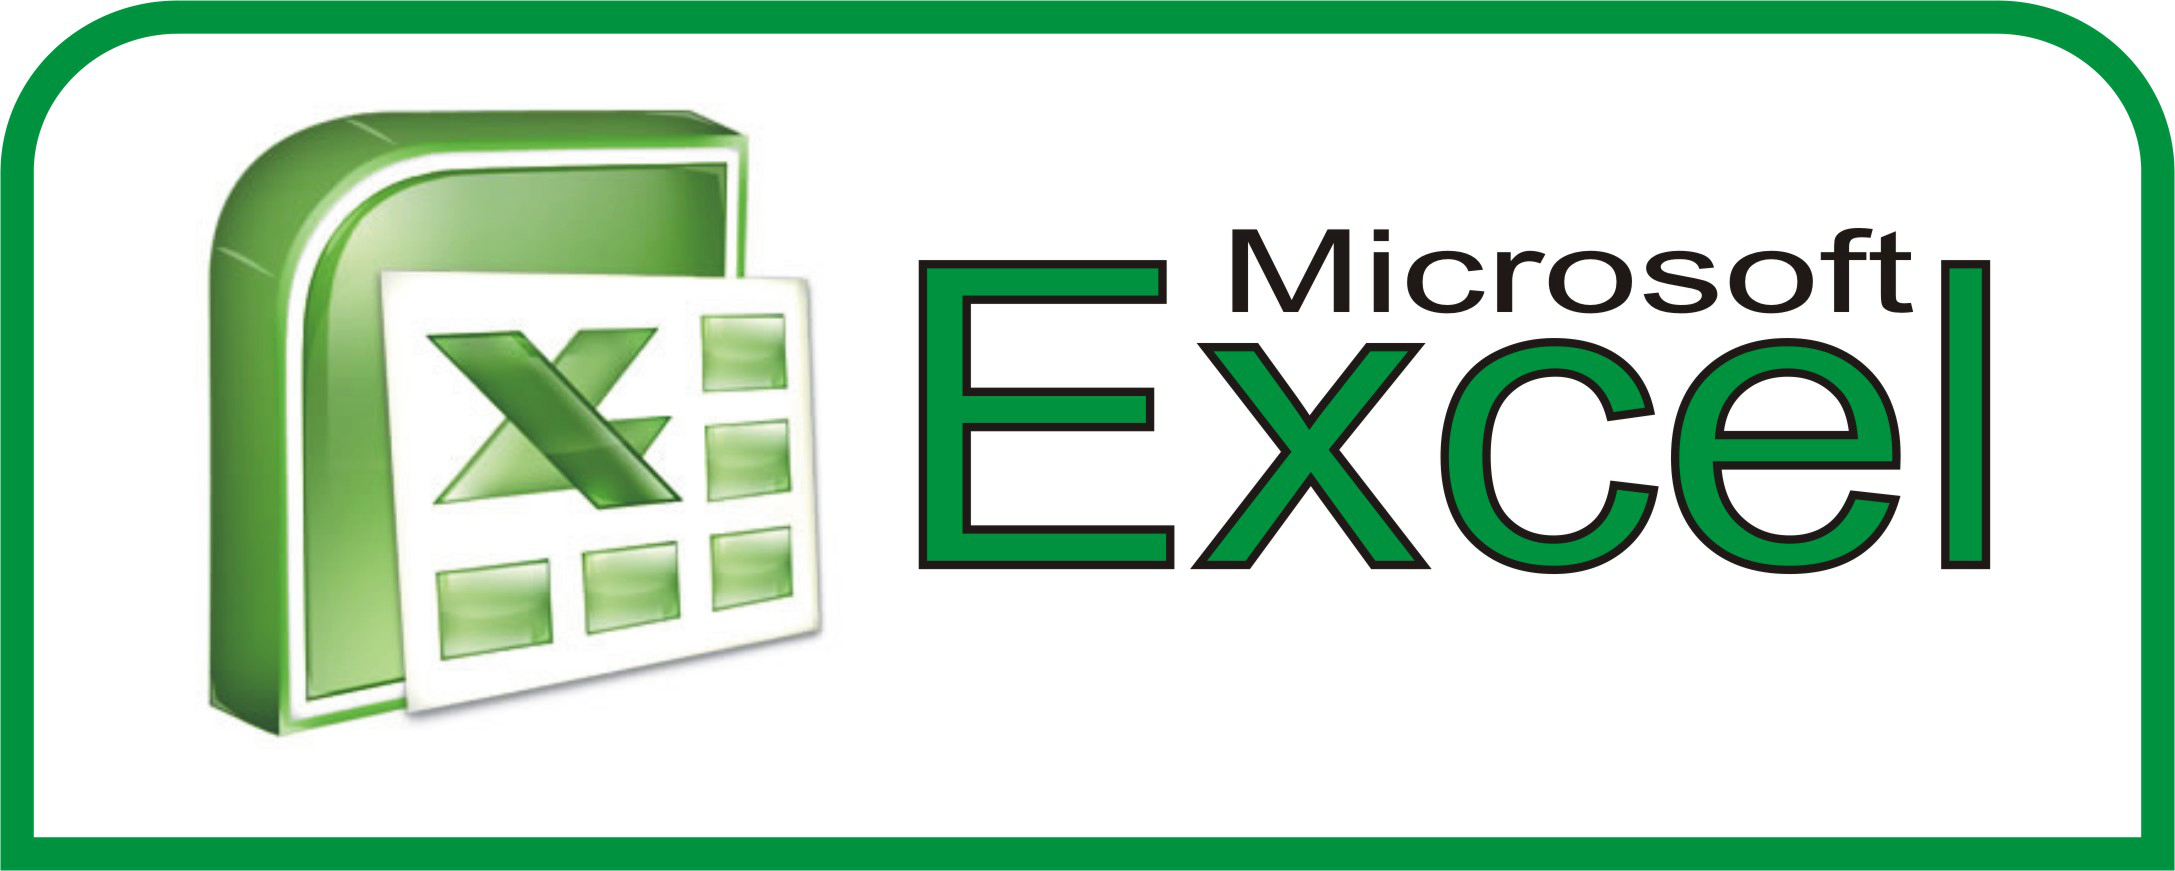 Ediblewildsus  Unique  Excel Shortcuts You Probably Didnt Know About  Techdissected With Licious Convert Excel To Powerpoint Besides How To Make Excel Drop Down List Furthermore Work Schedule Excel Template With Alluring Greater Than But Less Than Excel Also Lock Excel Column In Addition Access And Excel And Excel Protect Worksheet As Well As Create Drop Down Menu Excel Additionally Excel Send Email From Techdissectedcom With Ediblewildsus  Licious  Excel Shortcuts You Probably Didnt Know About  Techdissected With Alluring Convert Excel To Powerpoint Besides How To Make Excel Drop Down List Furthermore Work Schedule Excel Template And Unique Greater Than But Less Than Excel Also Lock Excel Column In Addition Access And Excel From Techdissectedcom